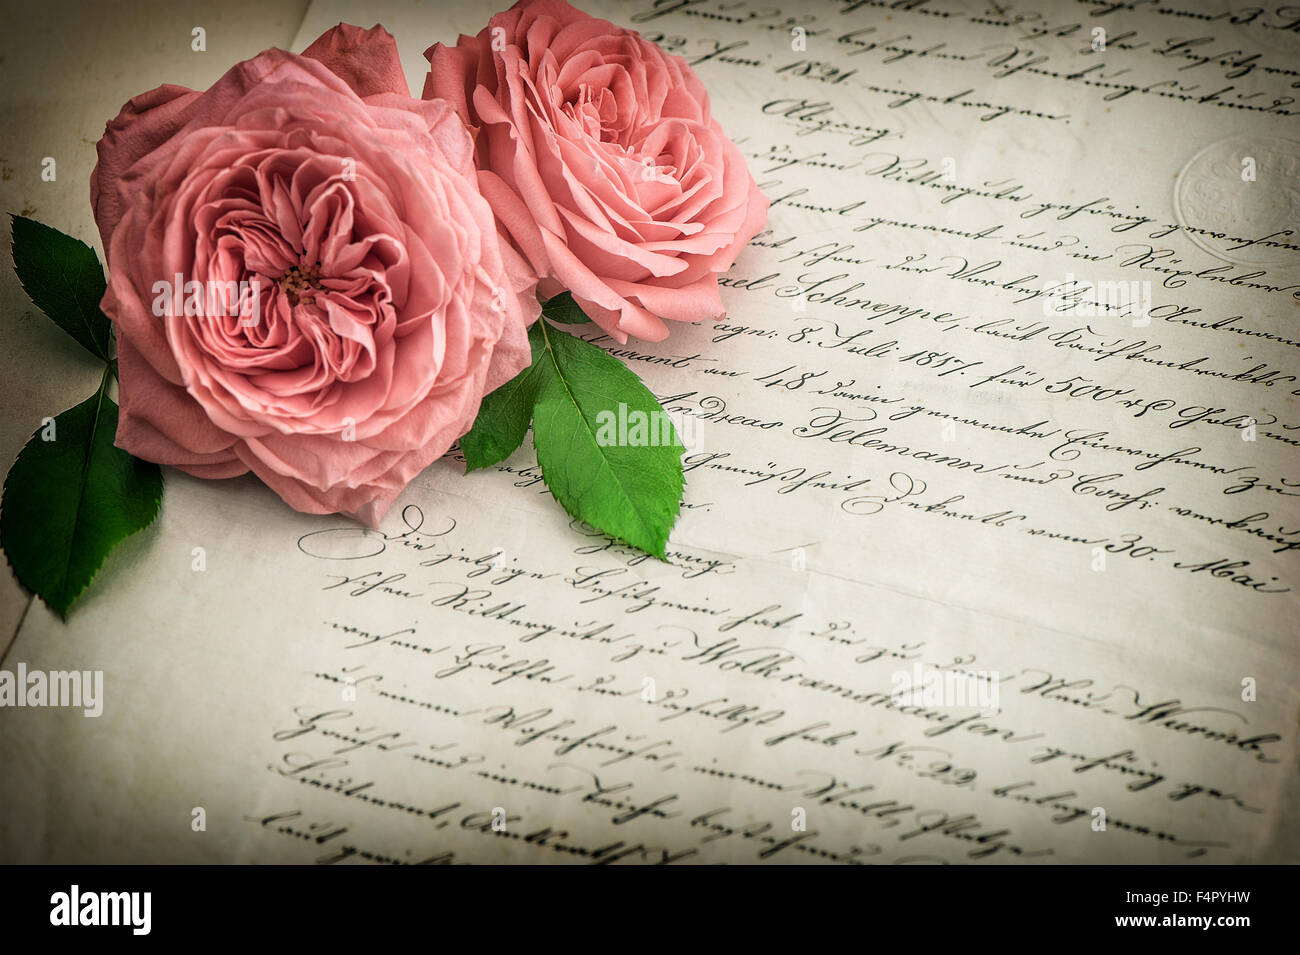 Pink Rose Flowers And Old Handwritten Letter Vintage Paper Background Retro Style Toned Picture With Vignette Selective Focus